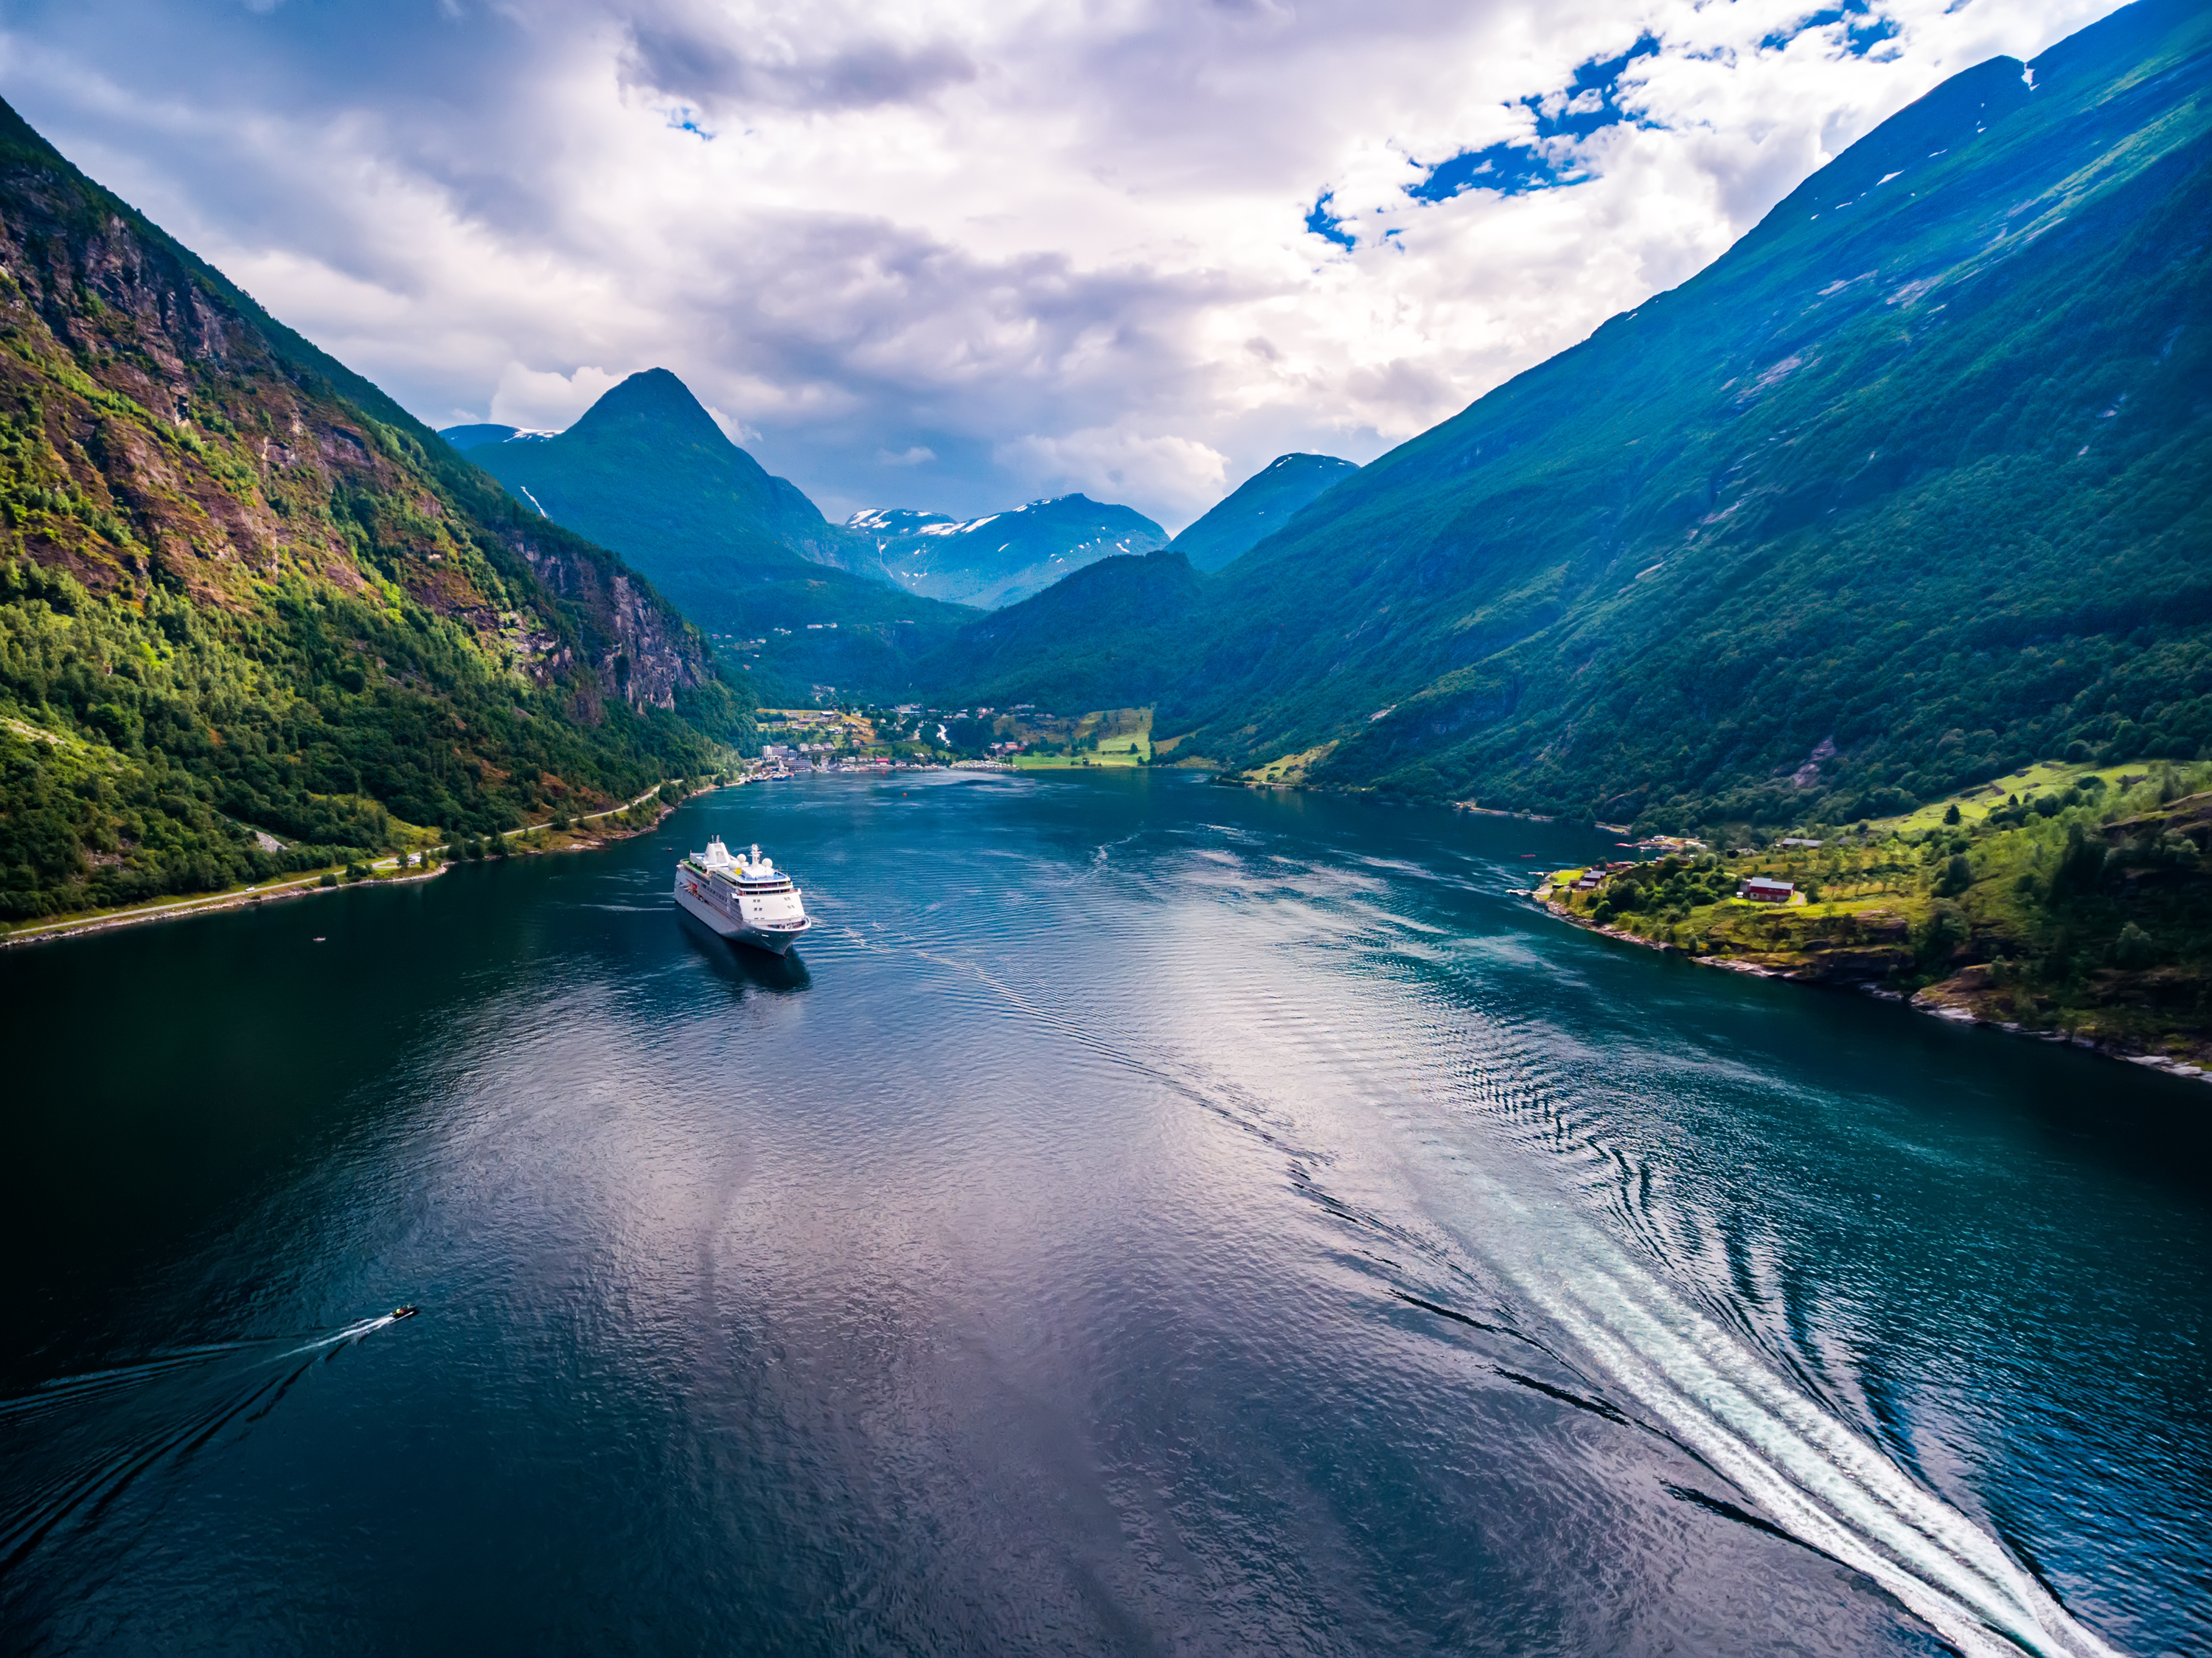 Geiranger fjord, Norway aerial photography.